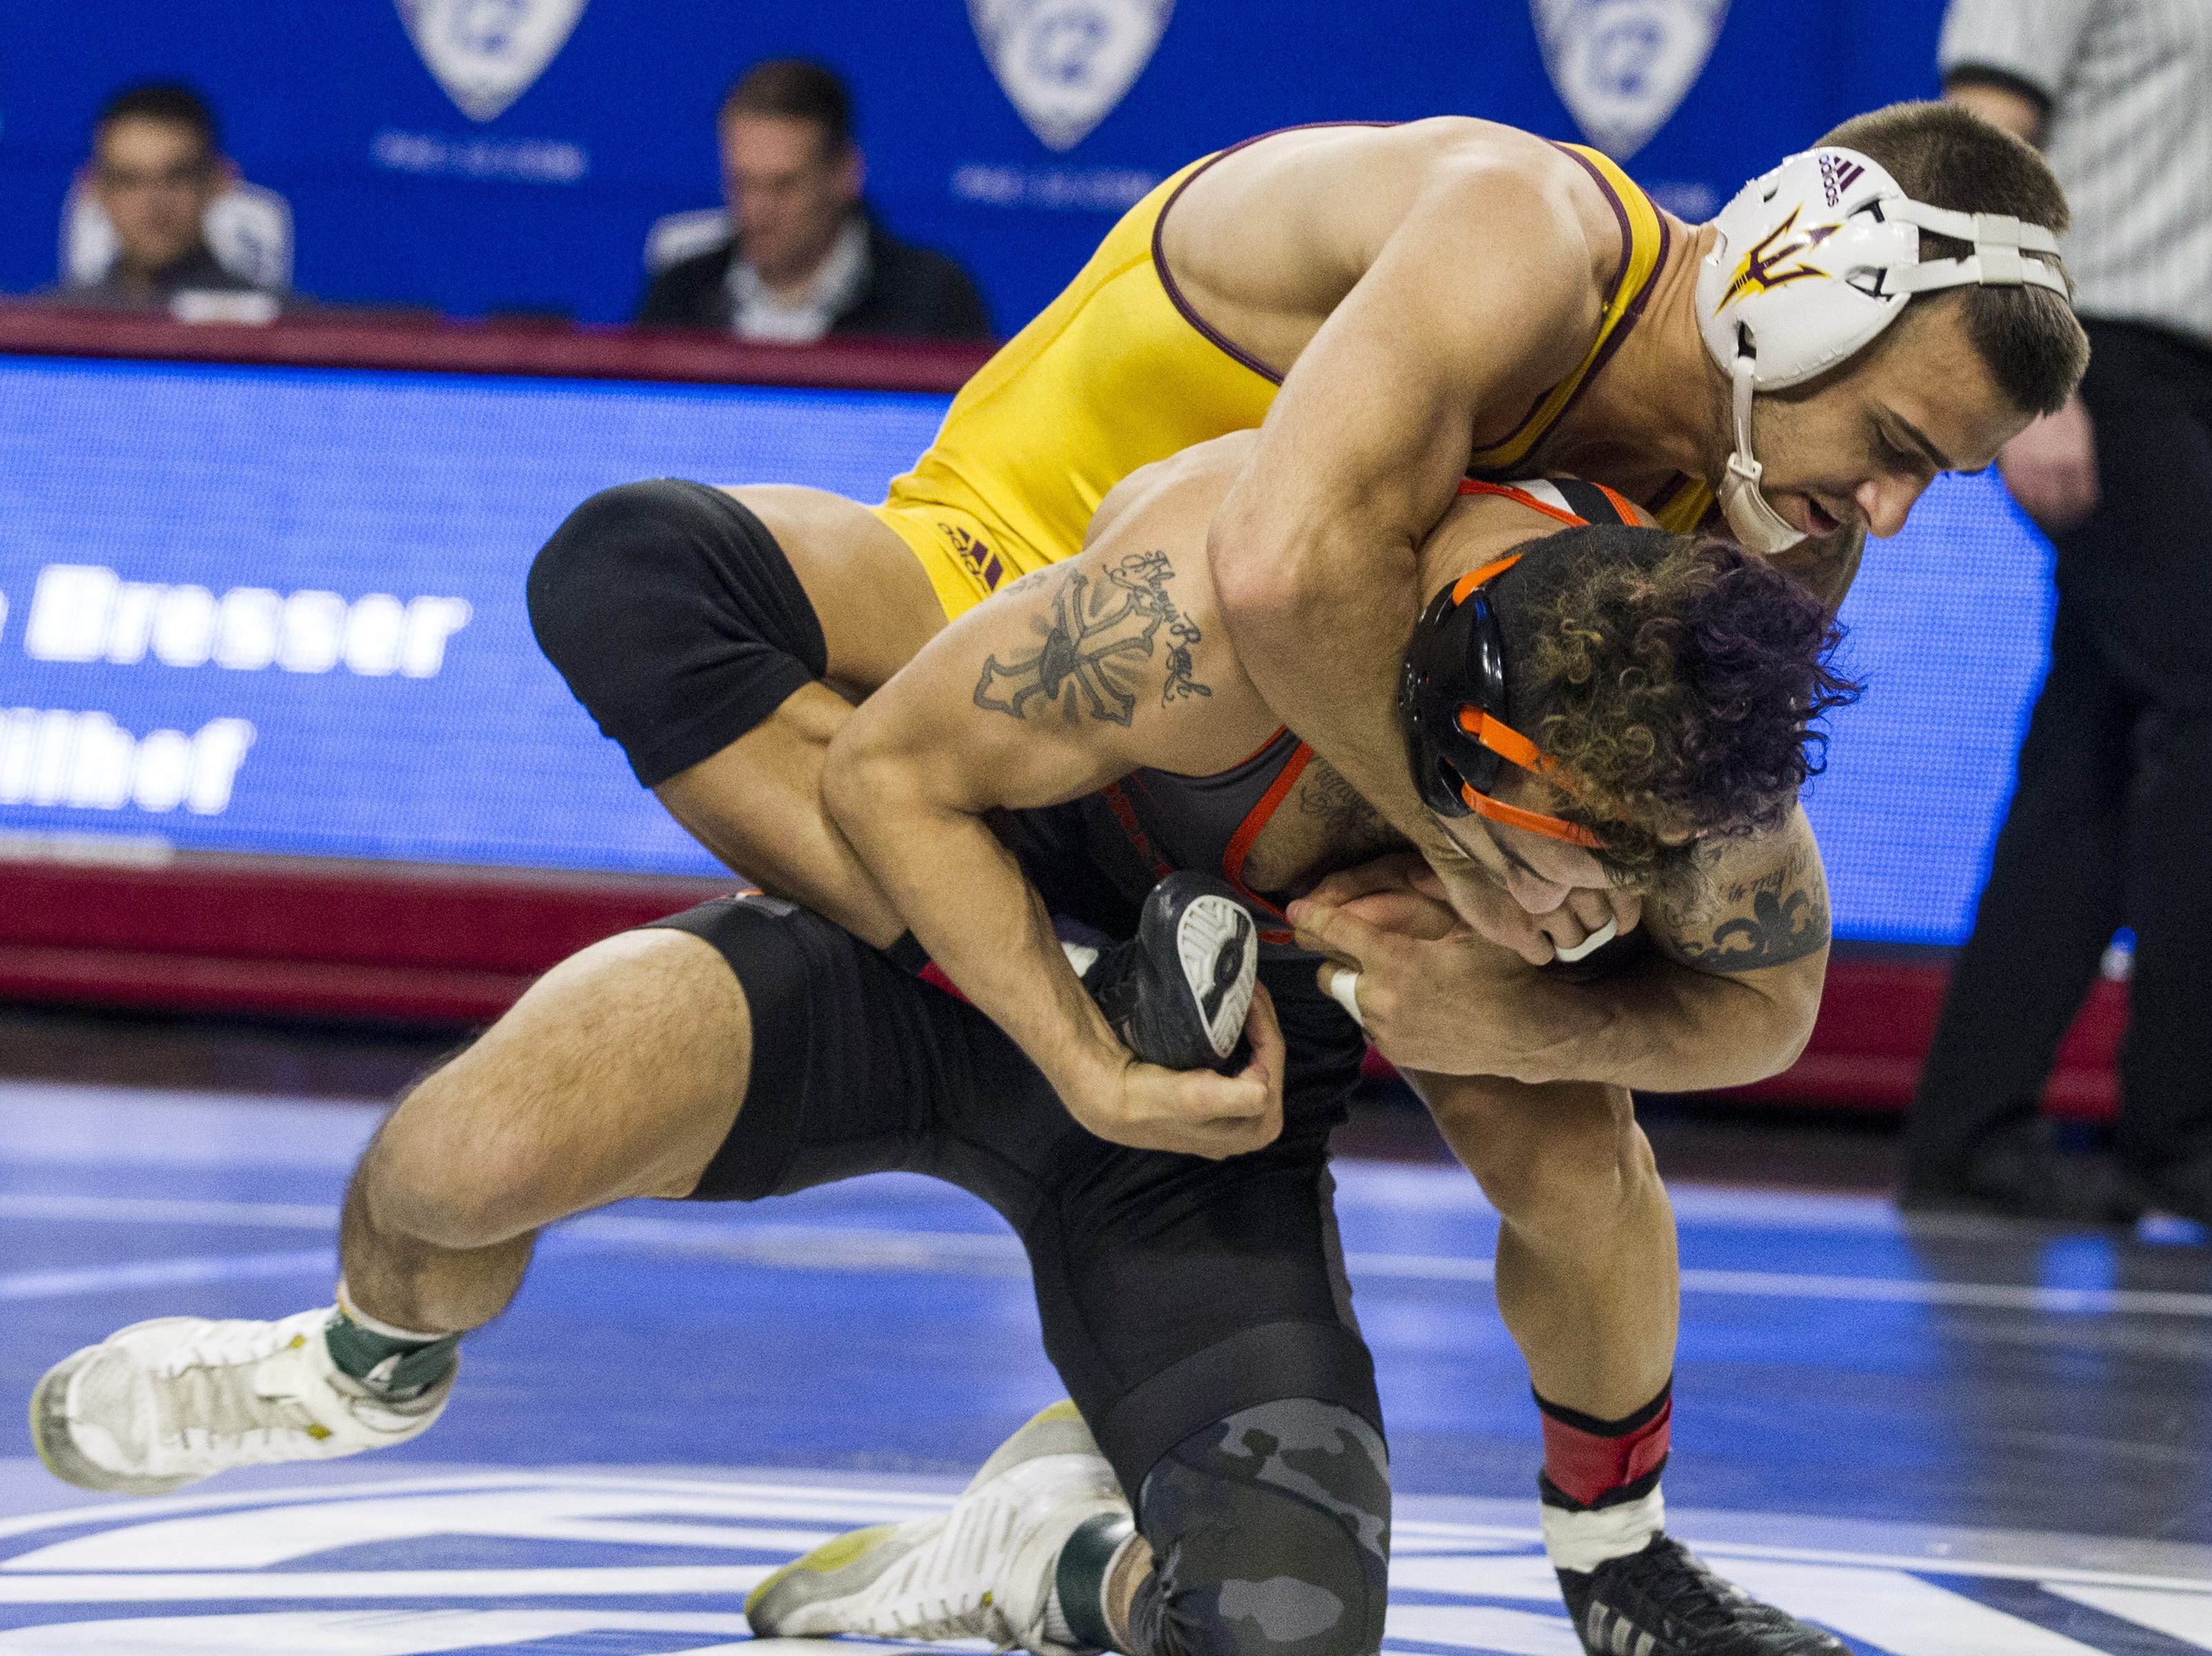 ASU's Ryan Millhof gets the underhand on Oregon State's Ronnie Bresser in the 125 pound weight class during the Pac 12 Wrestling Championship at Wells Fargo Arena in Tempe on March 9, 2019.